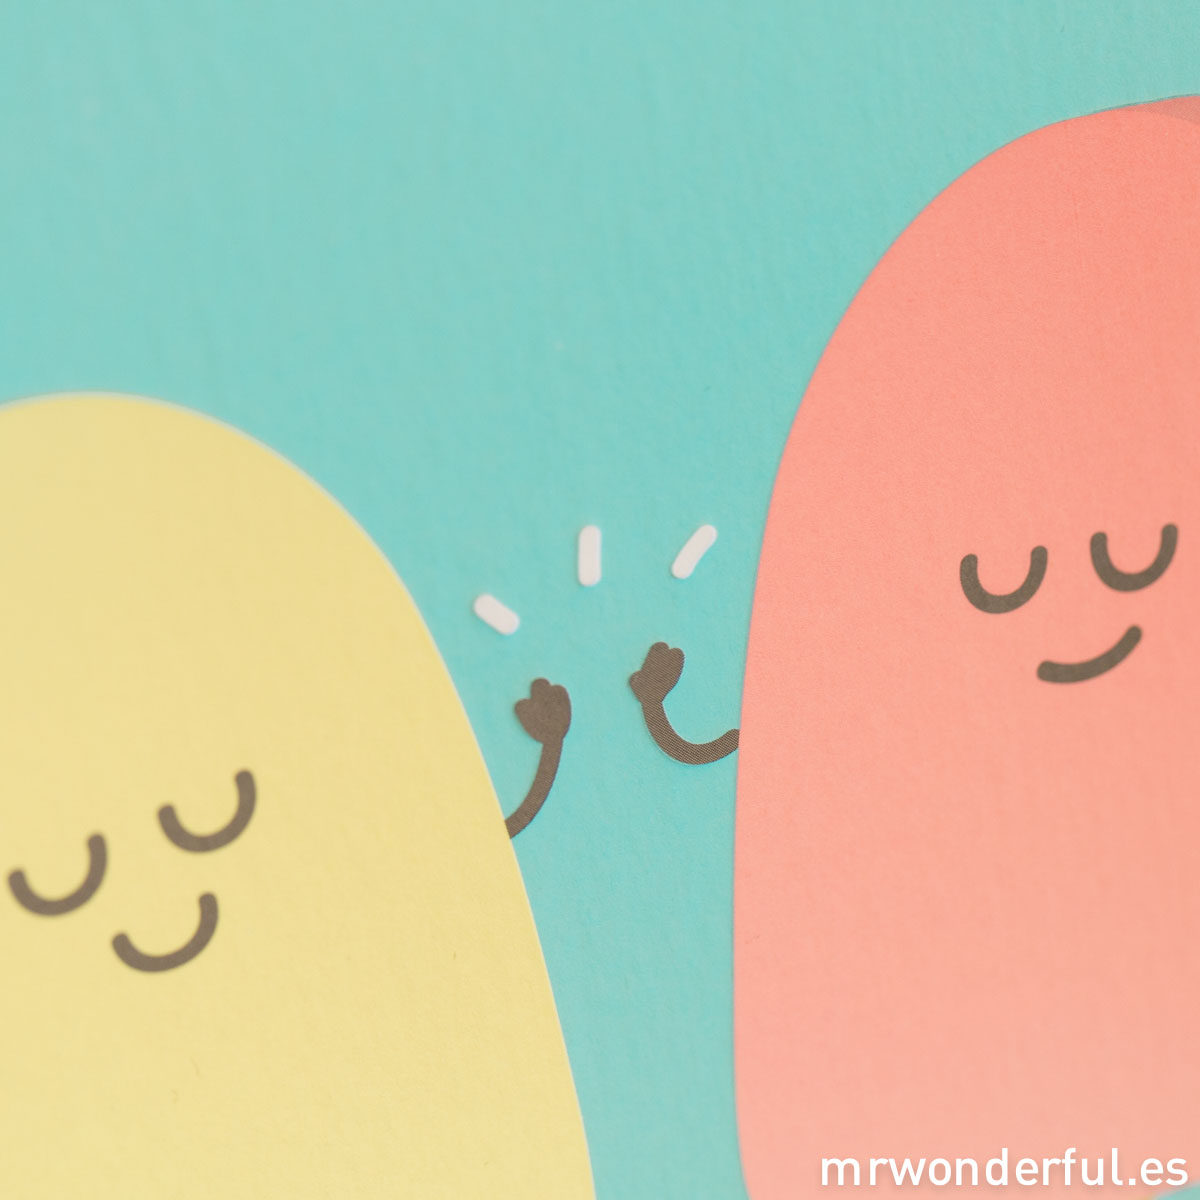 mrwonderful_LAM-RELIEVE-20-MARCO_together-cooler-13